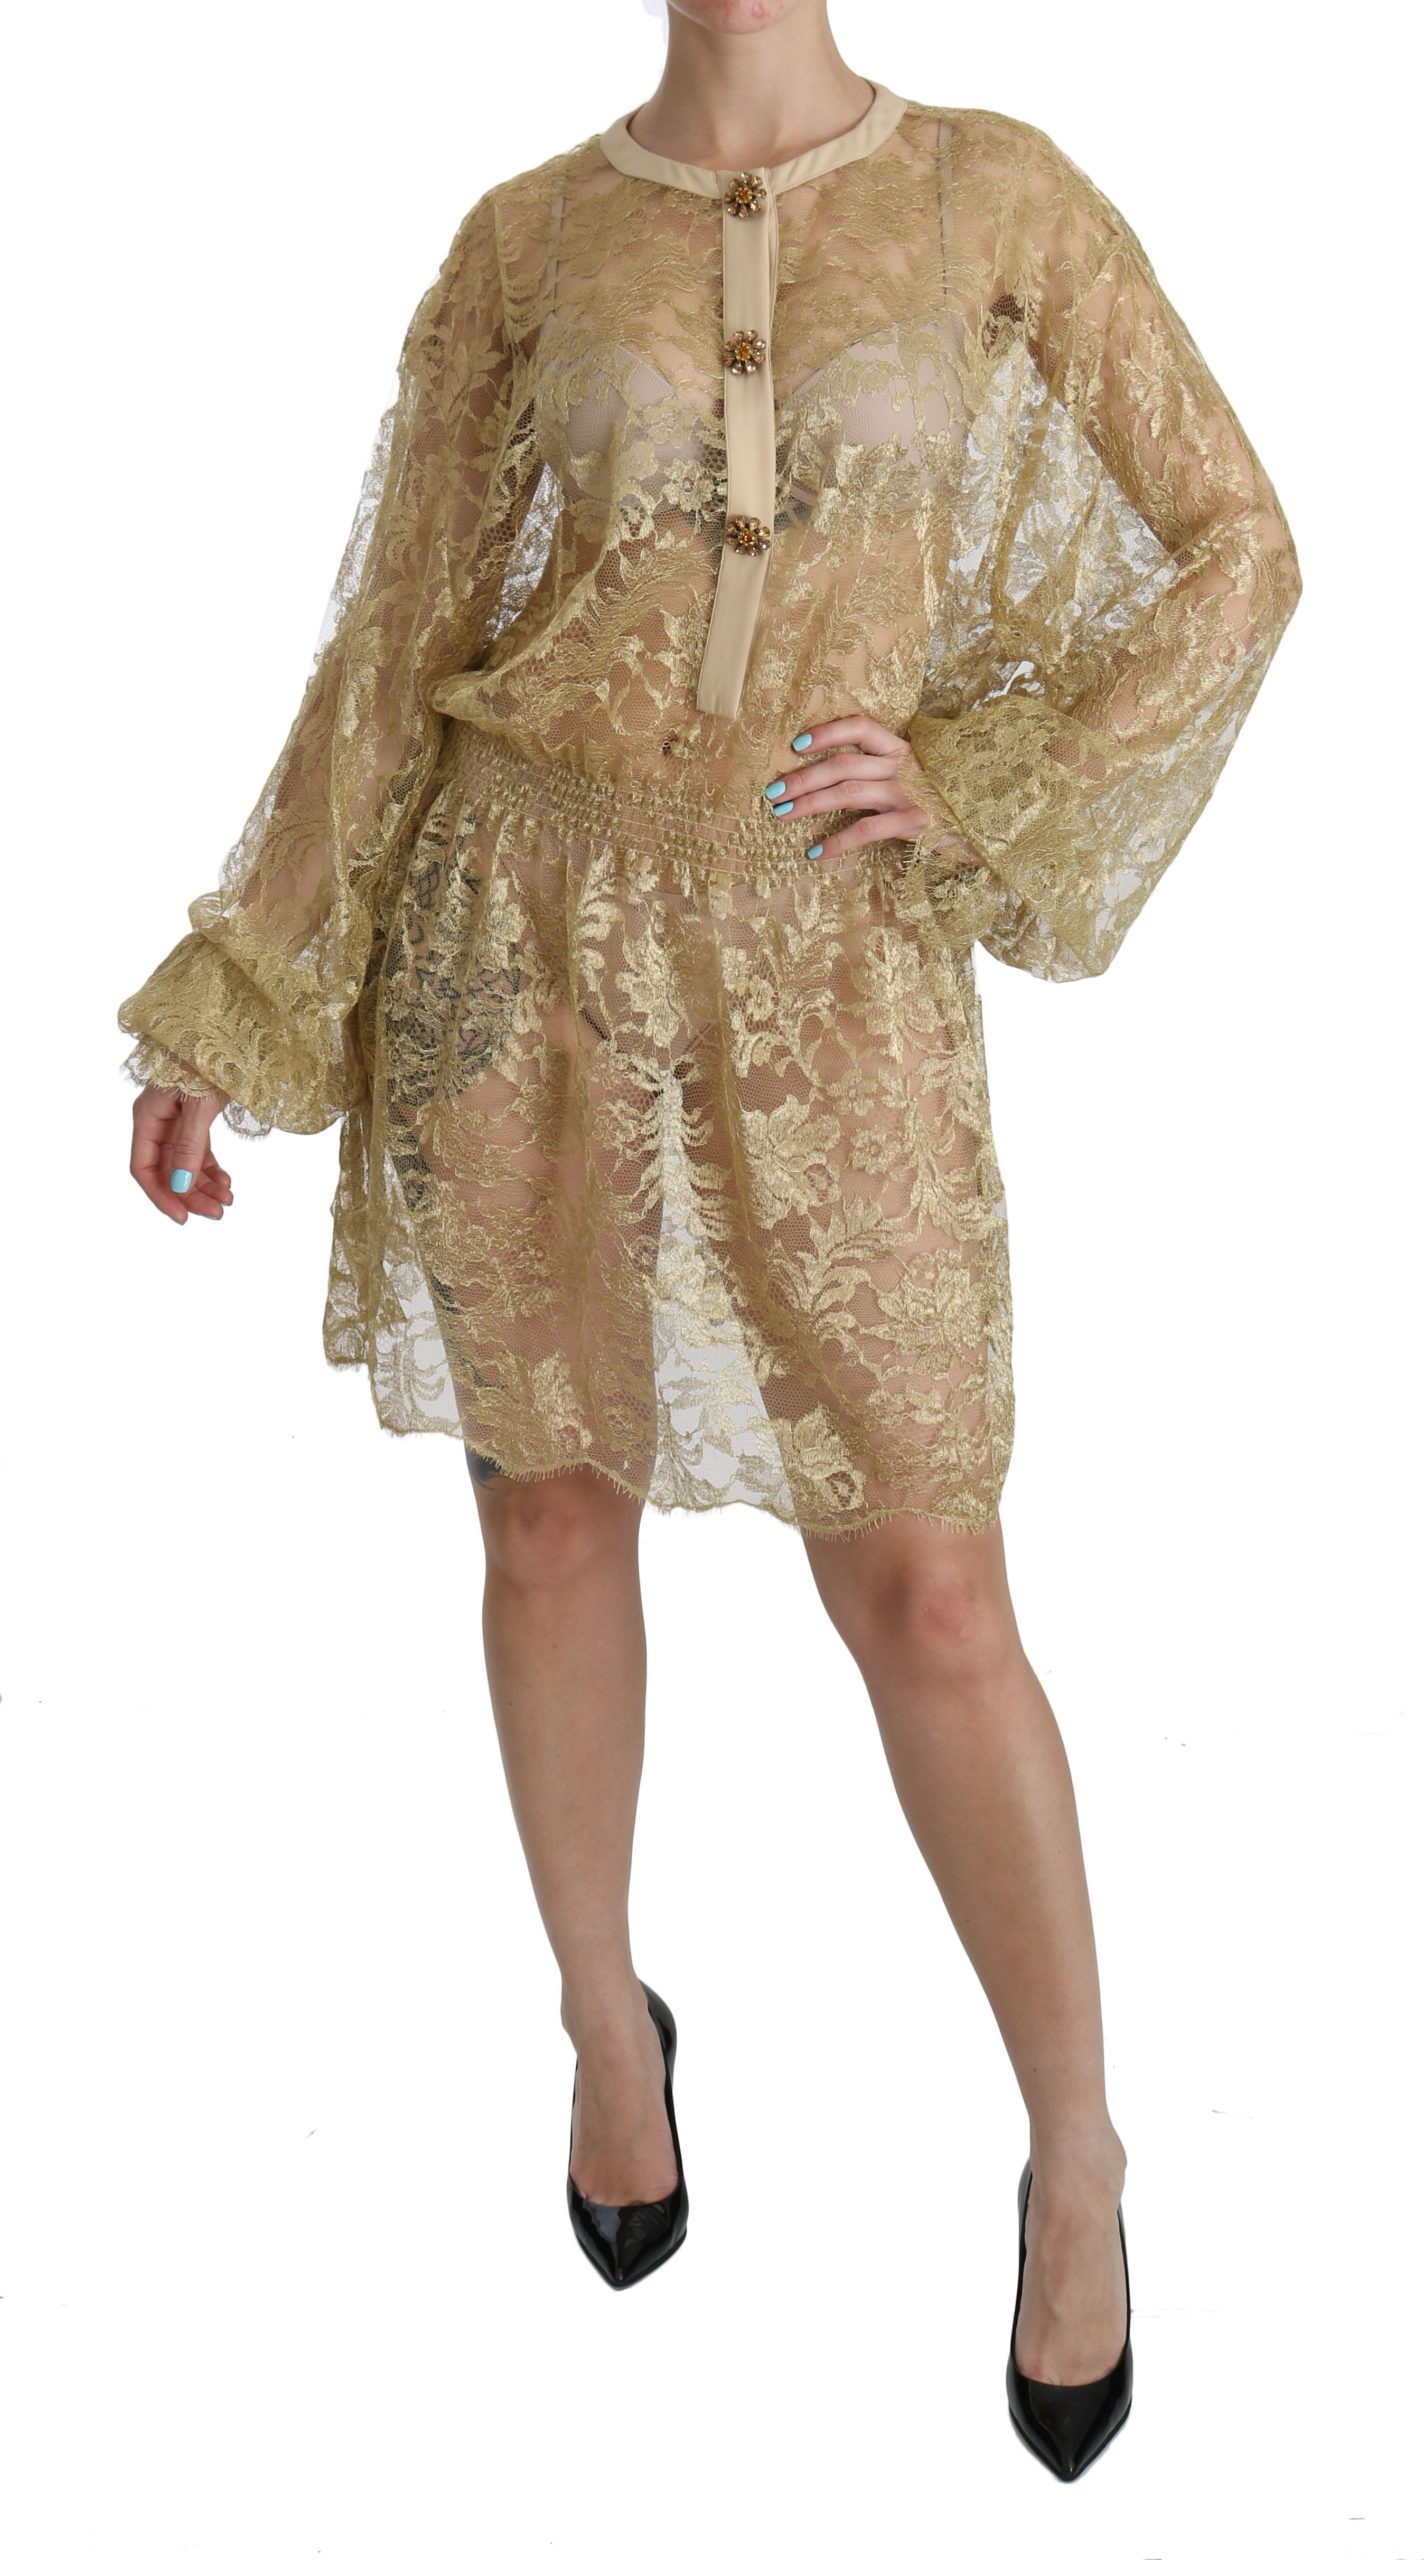 Dolce & Gabbana Women's Lace See Through A-Line Dress Gold Yellow DR2079 - IT40|S